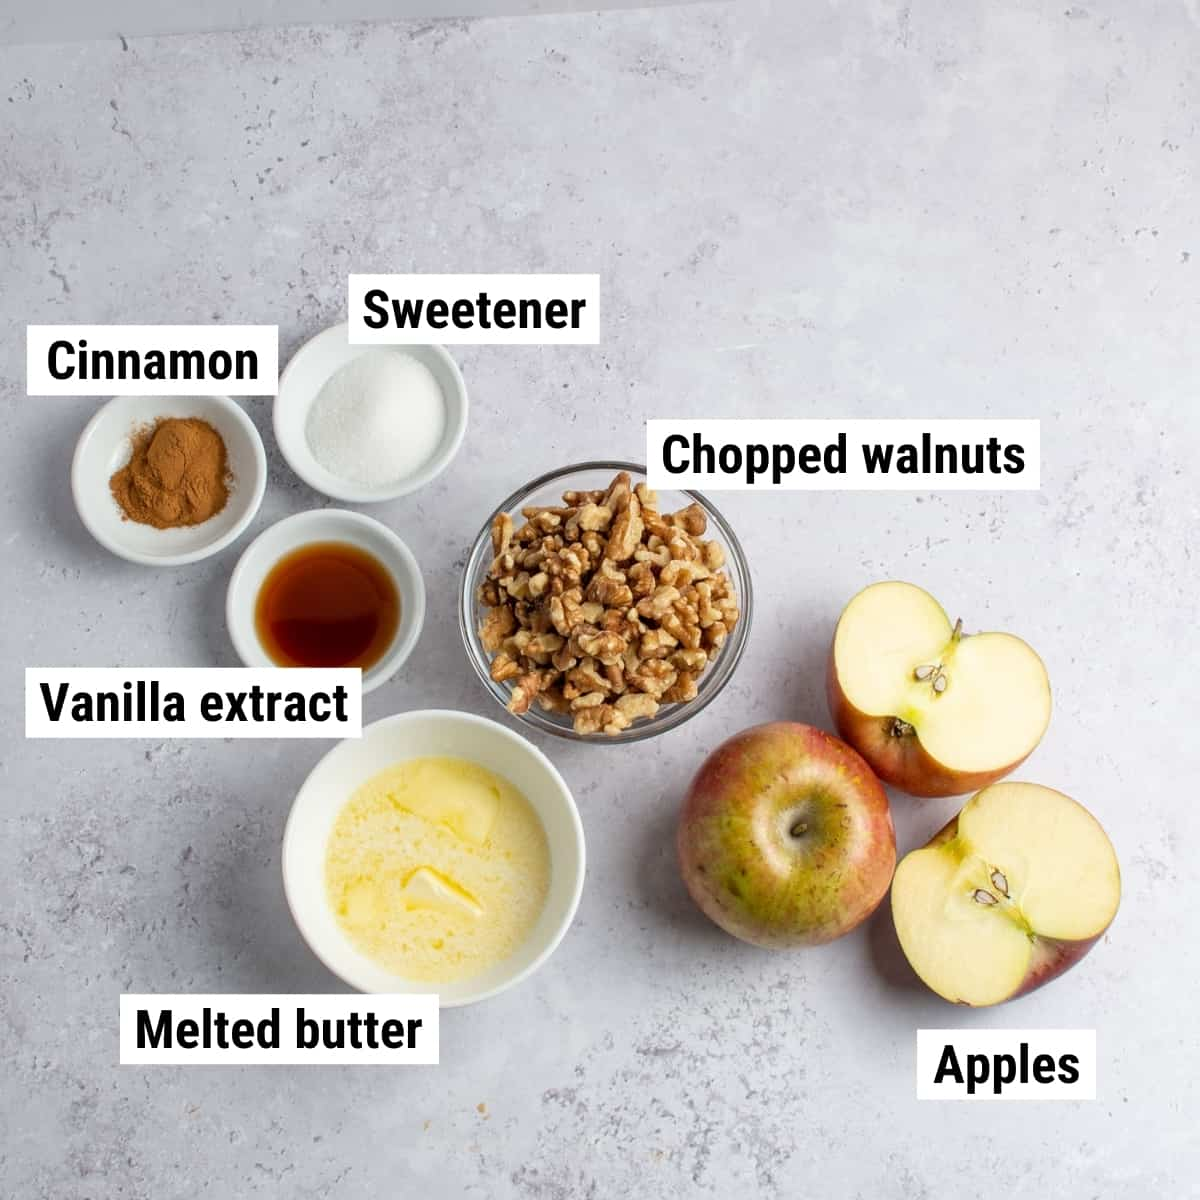 The ingredients used to make keto apple crisp laid out on a table.